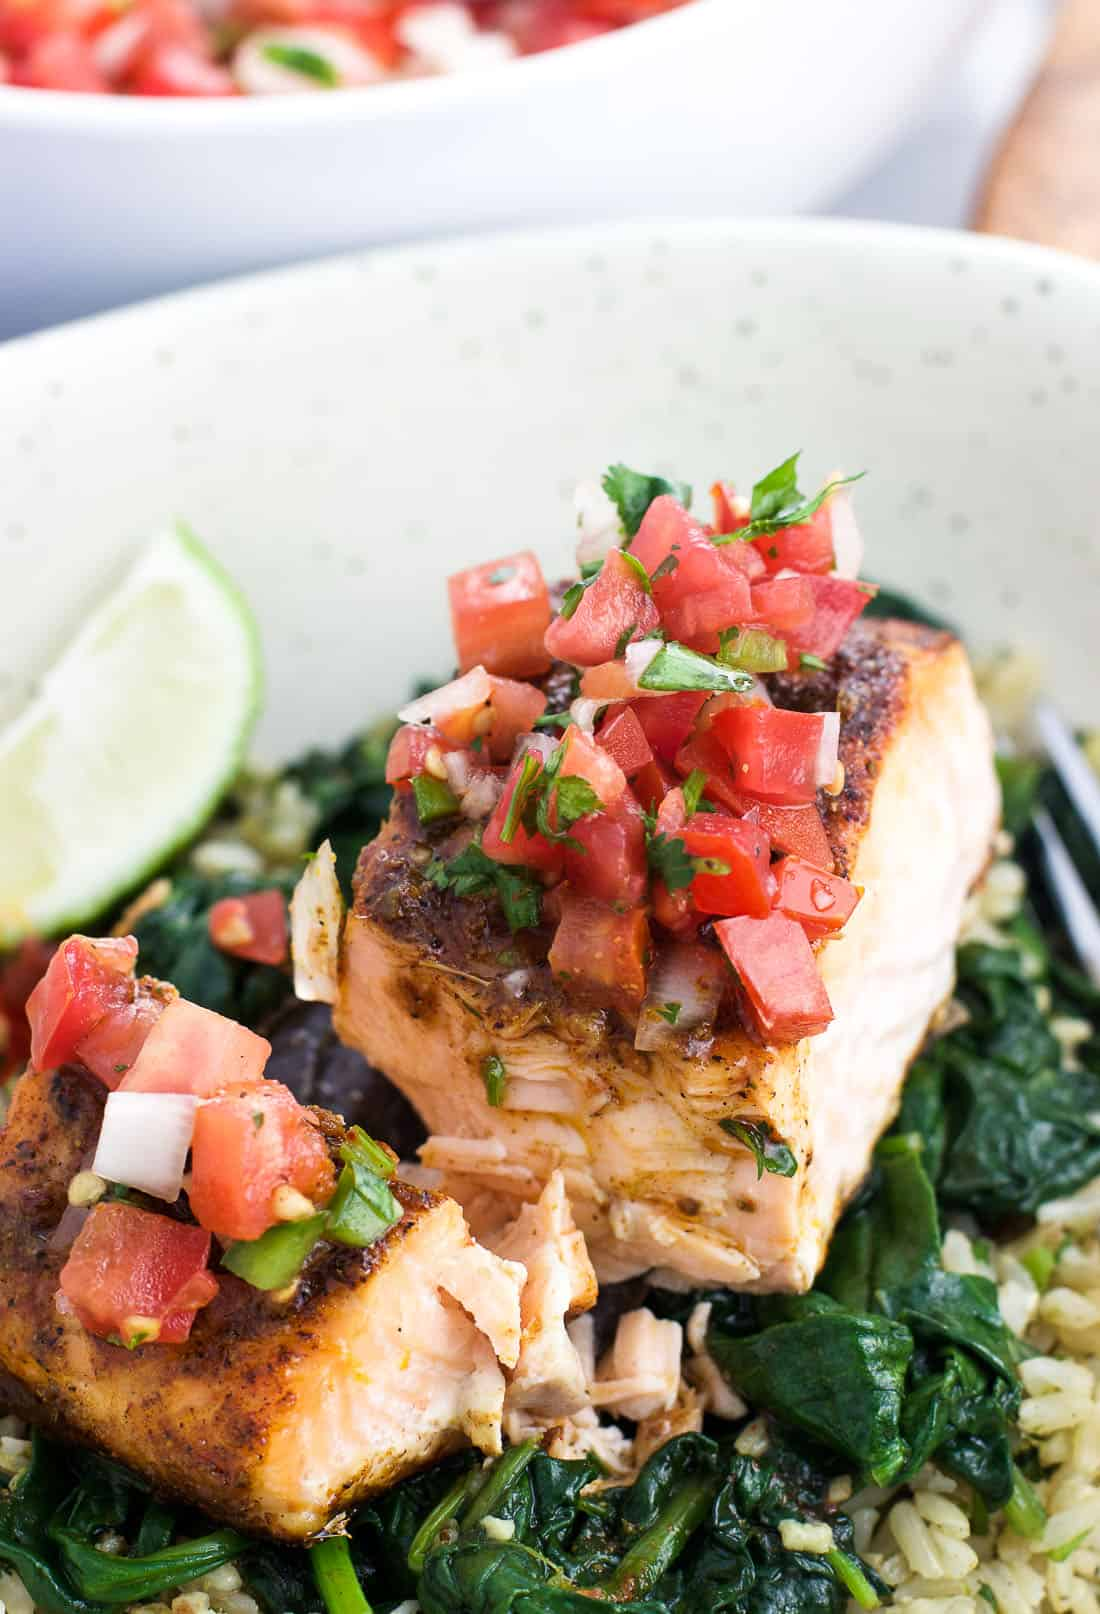 Pico de gallo on top of a baked salmon fillet on a bed of spinach and rice in a bowl.